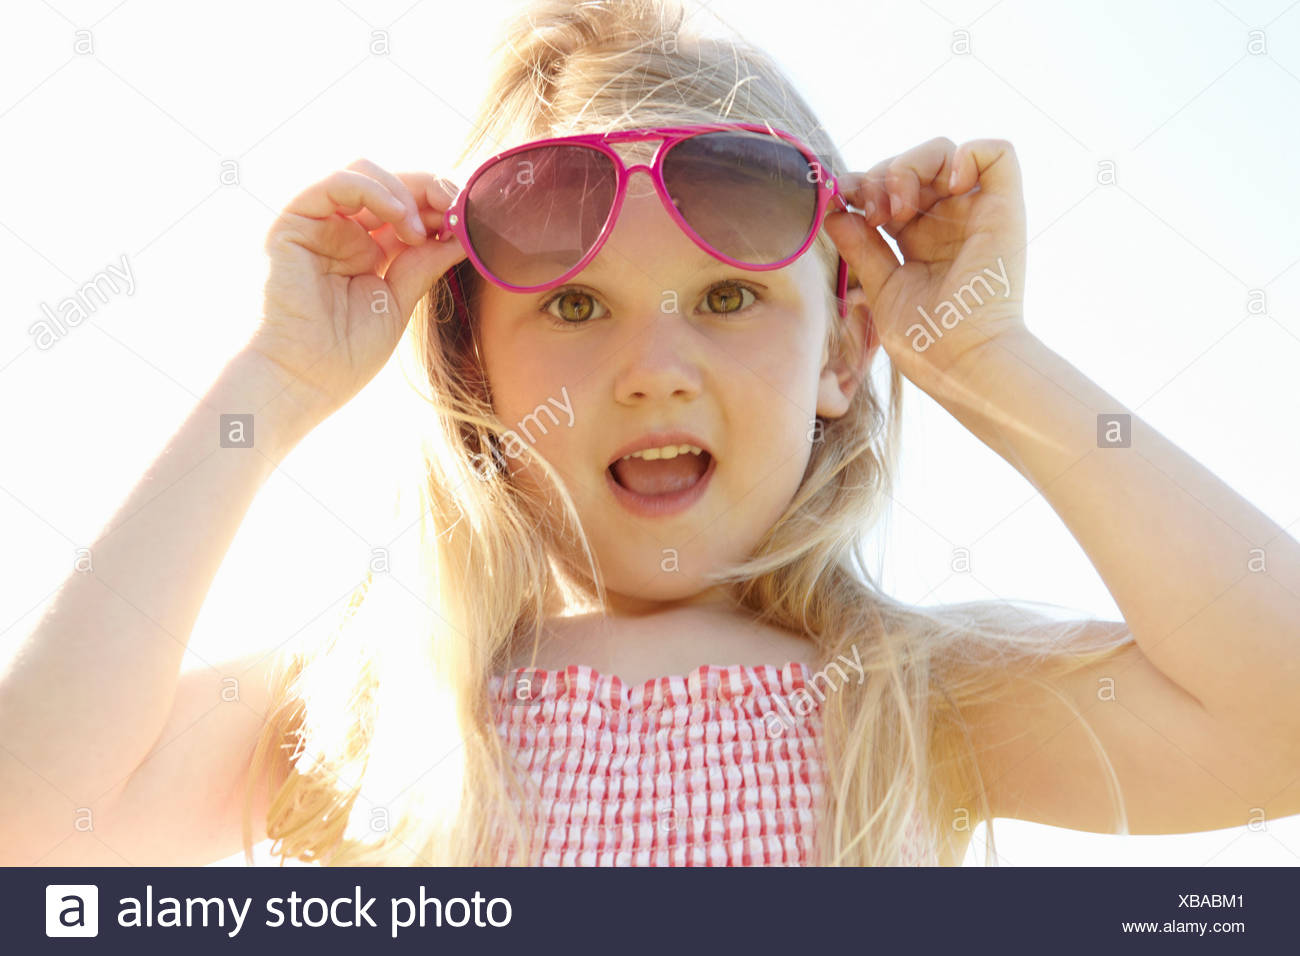 Child putting on sun glasses on hot sunny day Stock Photo